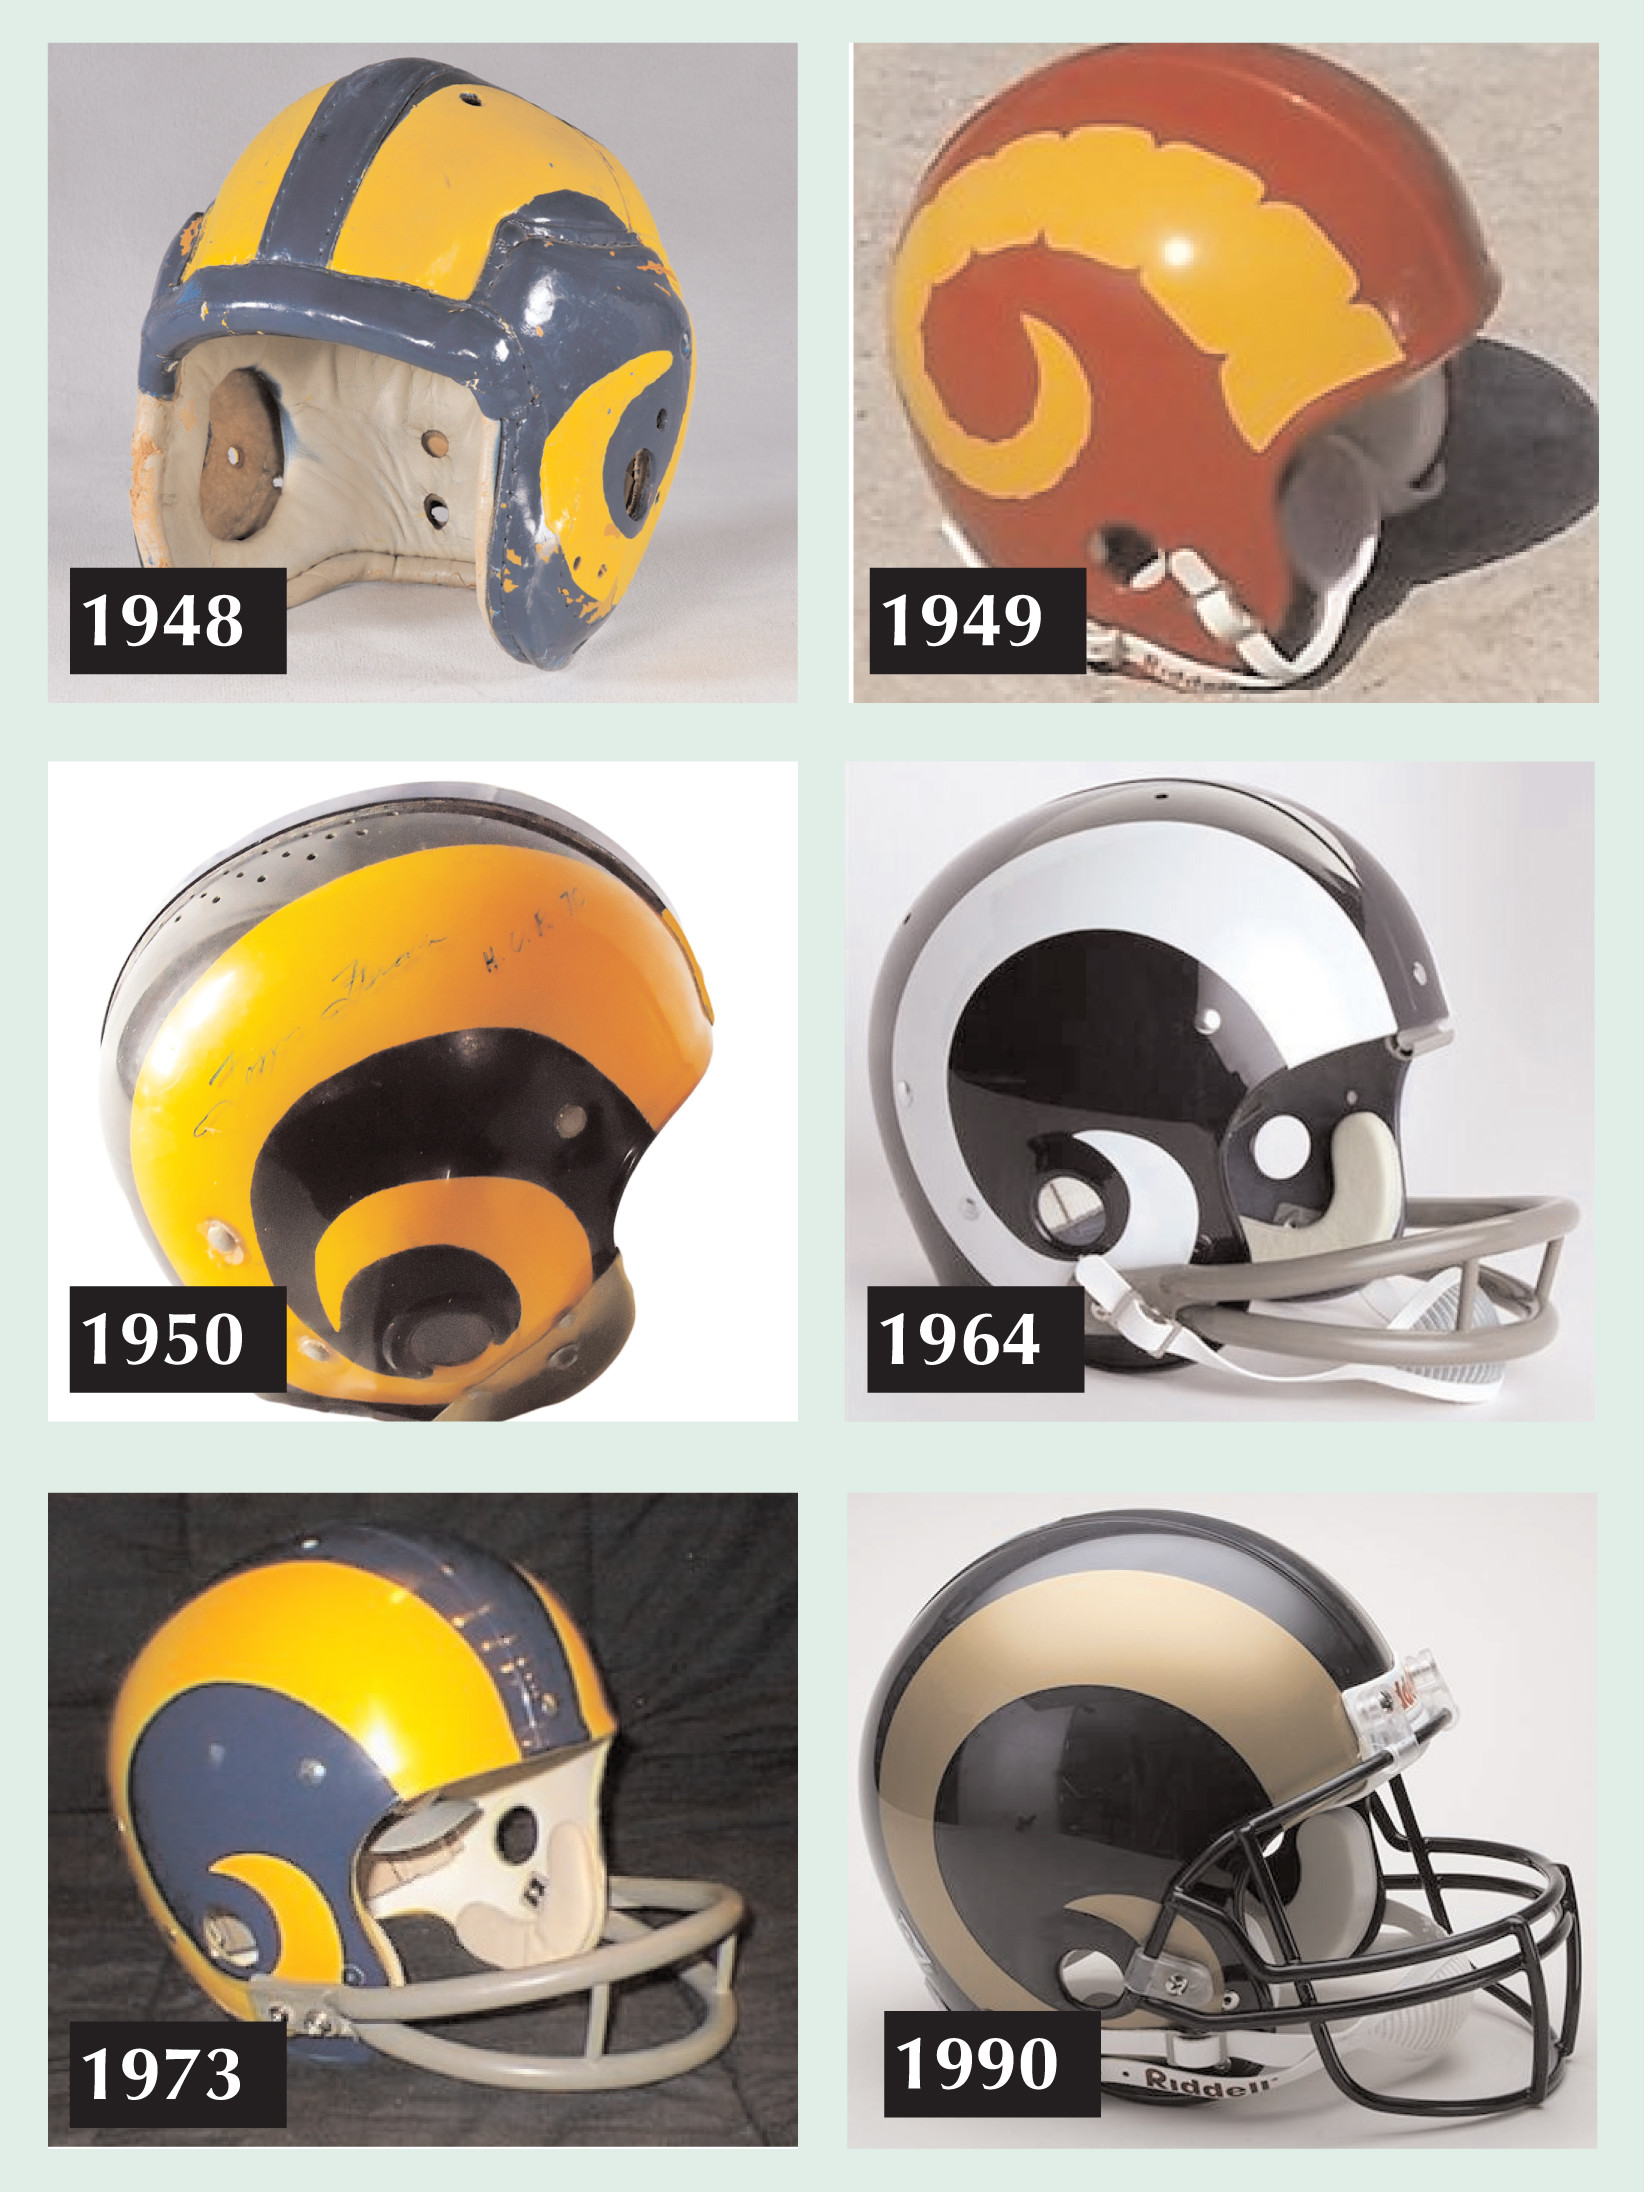 Fullback-Fred-Gehrke-of-the-Cleveland-Rams-designed-